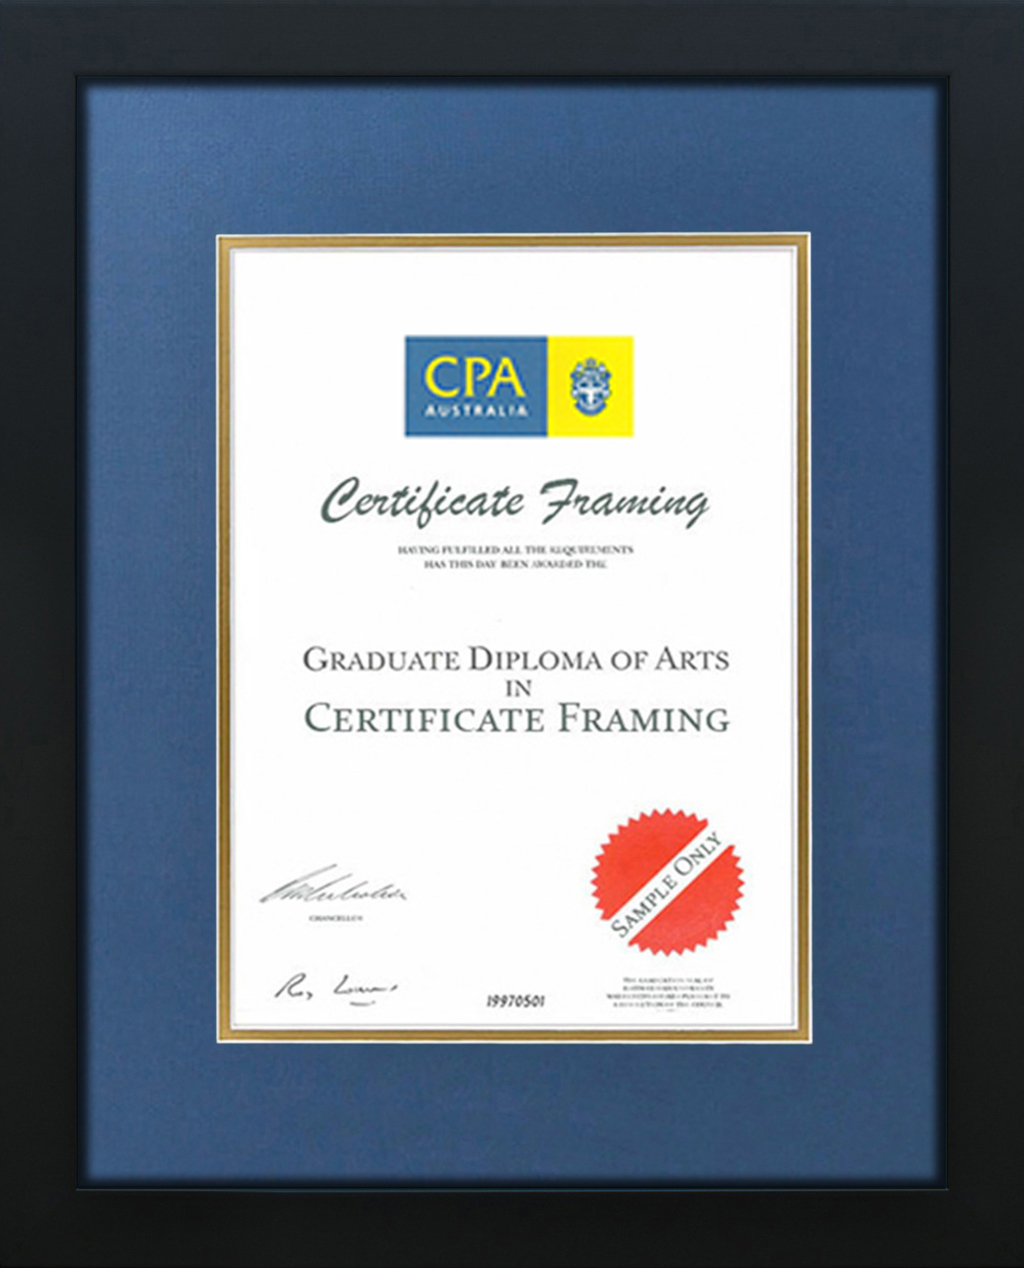 Cpa australia certificate frame cpa certificate frames cpa black blue gold xflitez Images